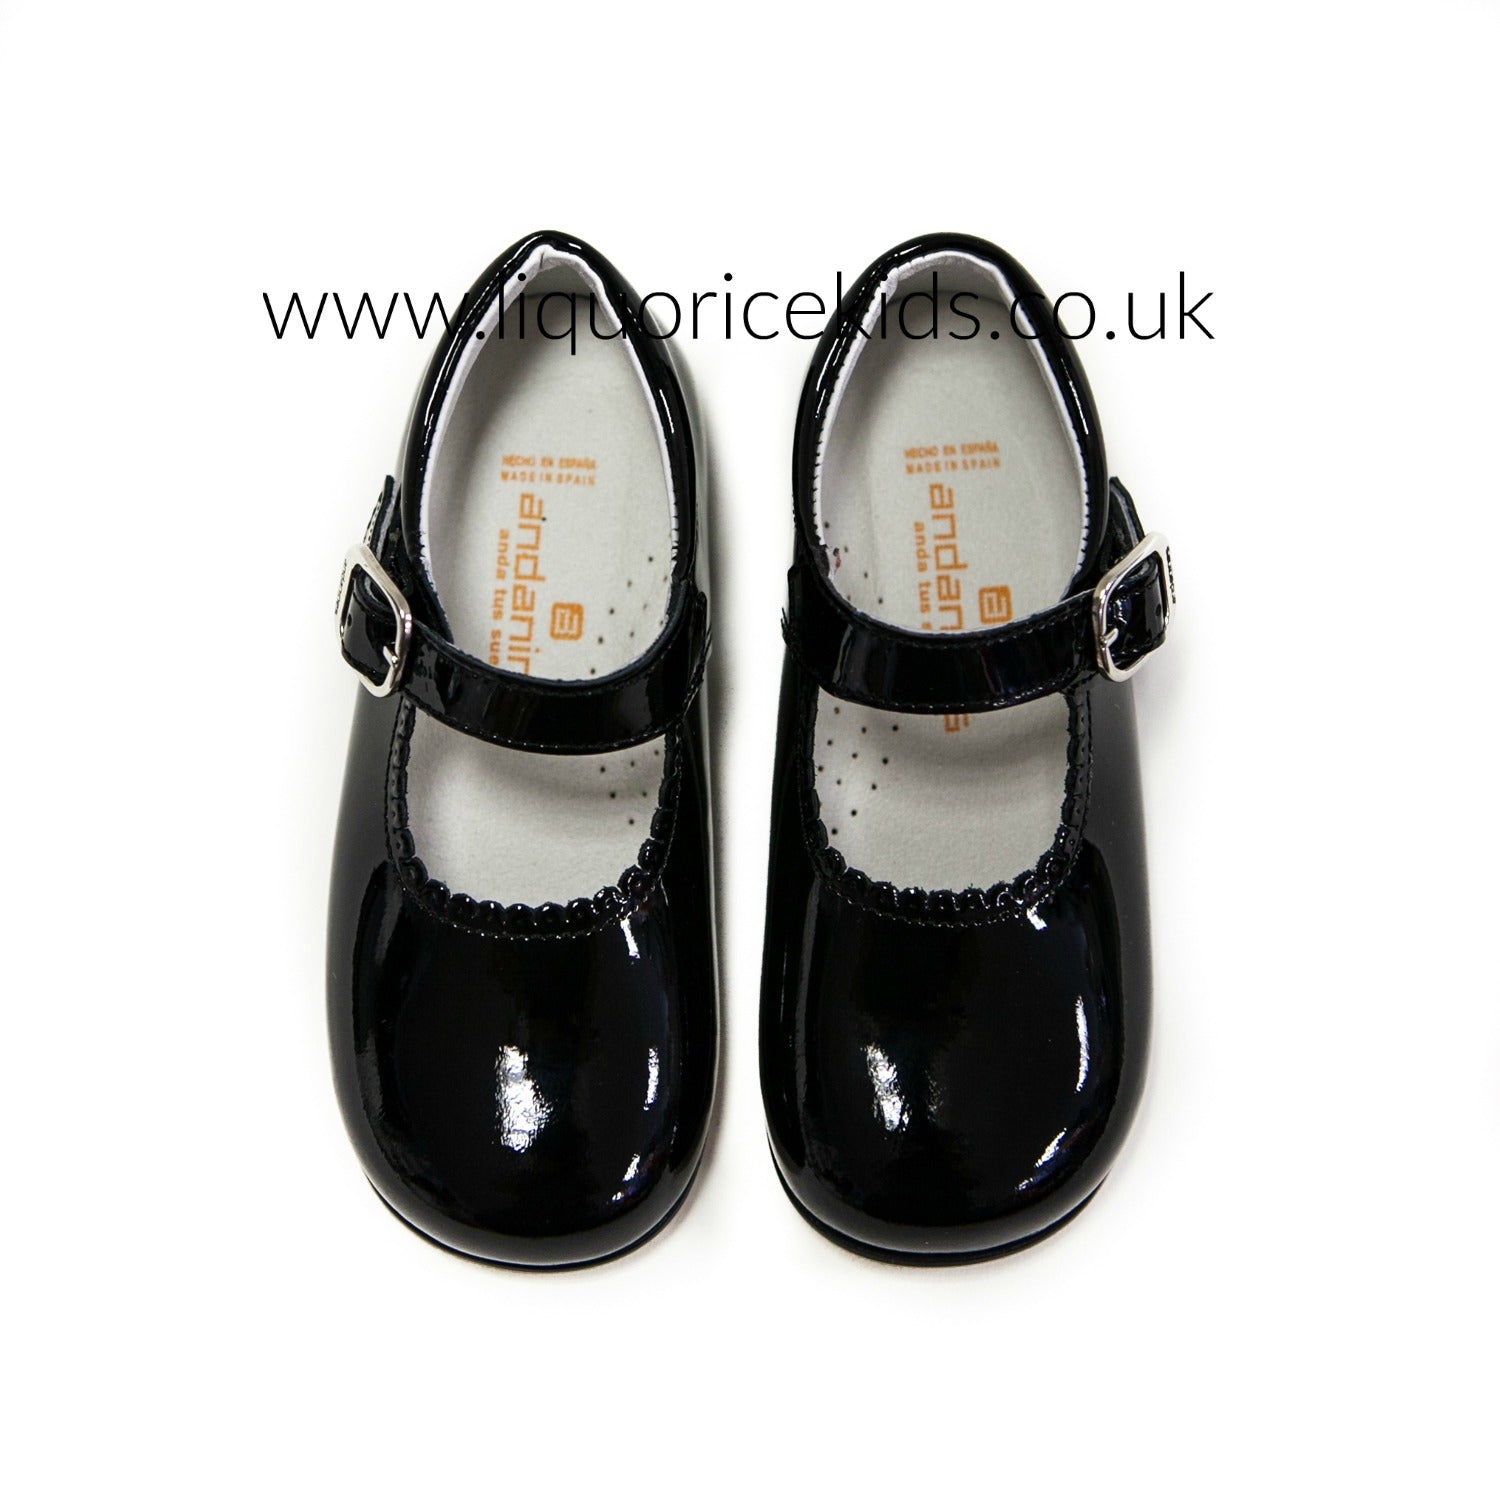 Andanines Girls Black Patent Mary Janes With Scallop Edging